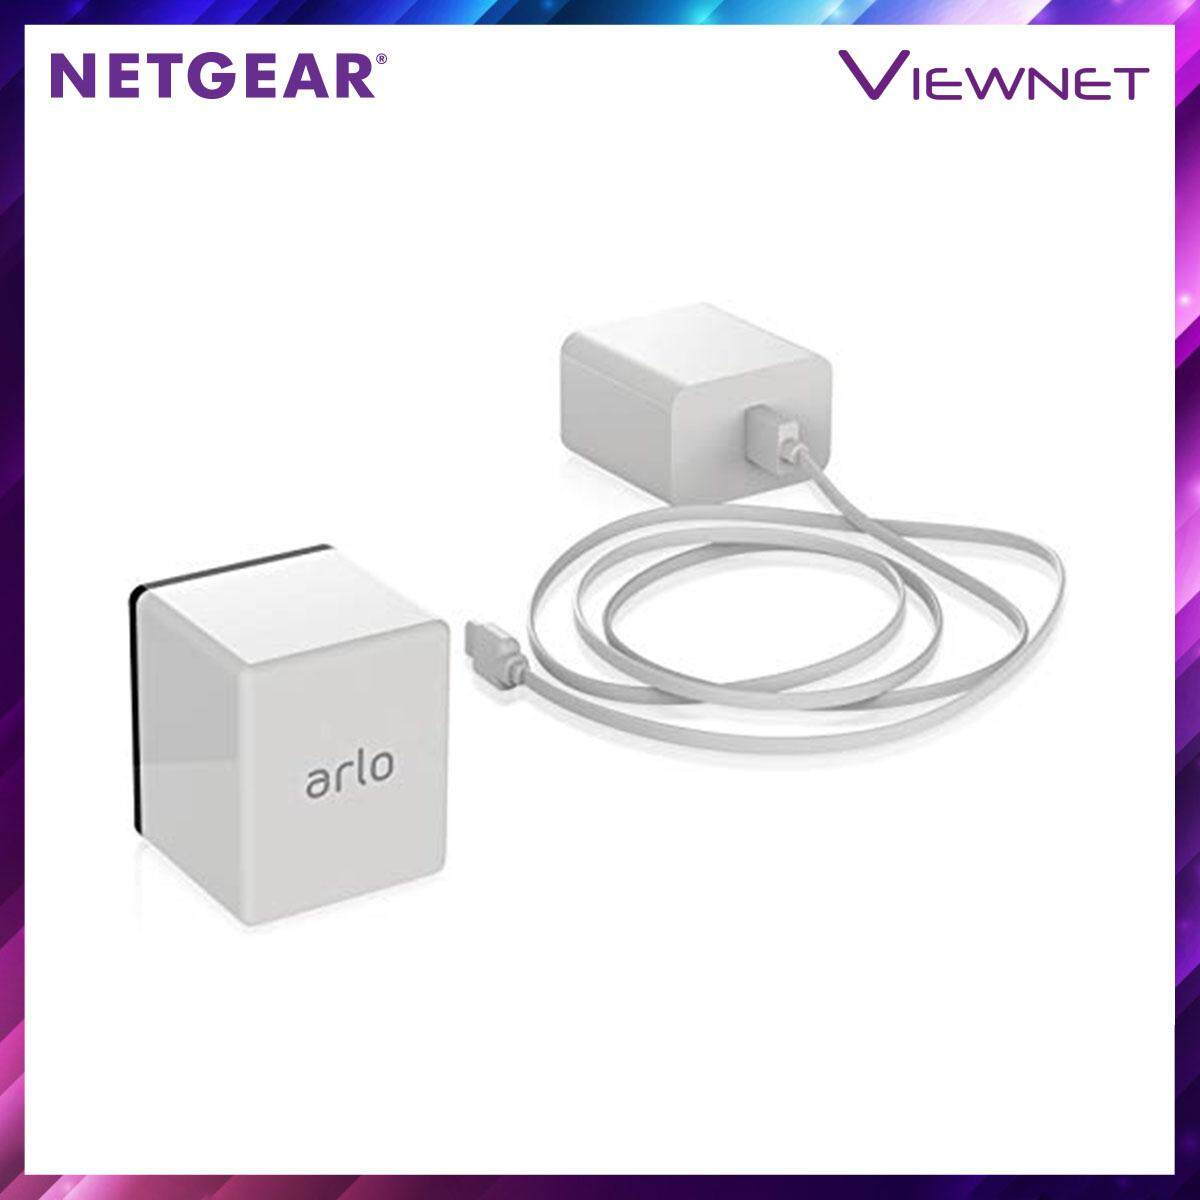 NETGEAR Arlo Pro Rechargeable Battery VMA4400